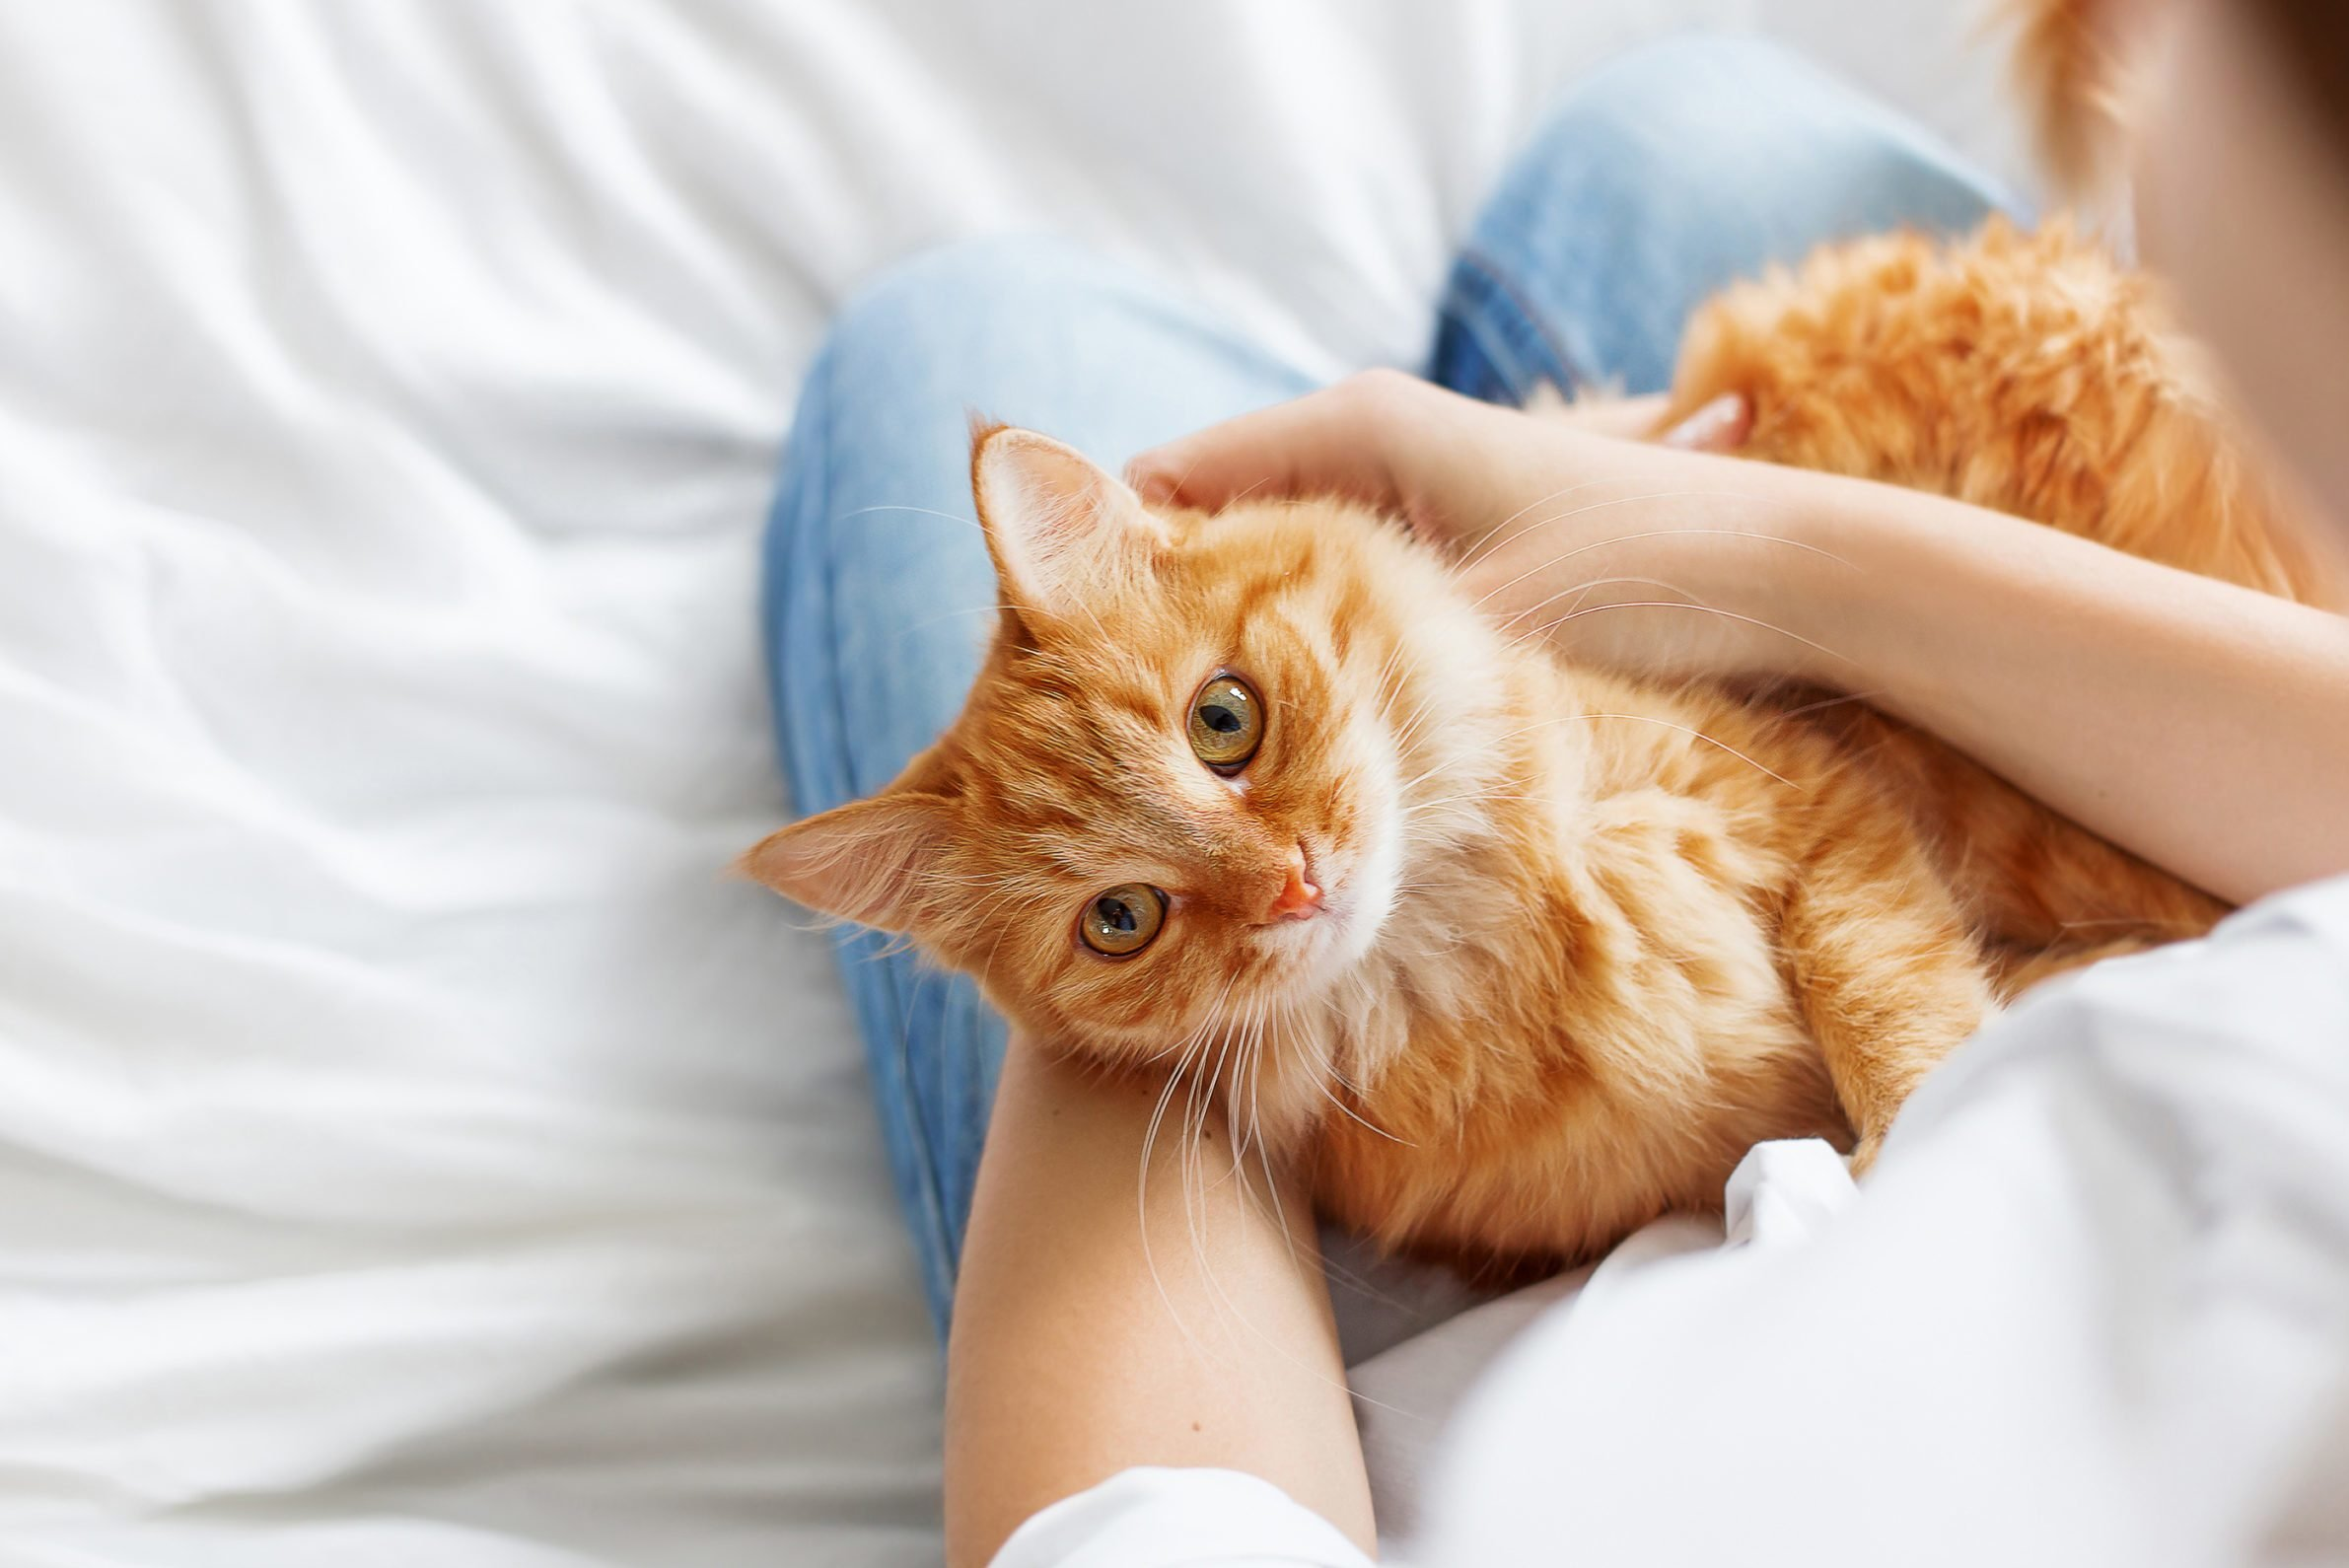 Cute ginger cat lies on woman's hands. The fluffy pet comfortably settled to sleep or to play. Cute cozy background with place for text. Morning bedtime at home.